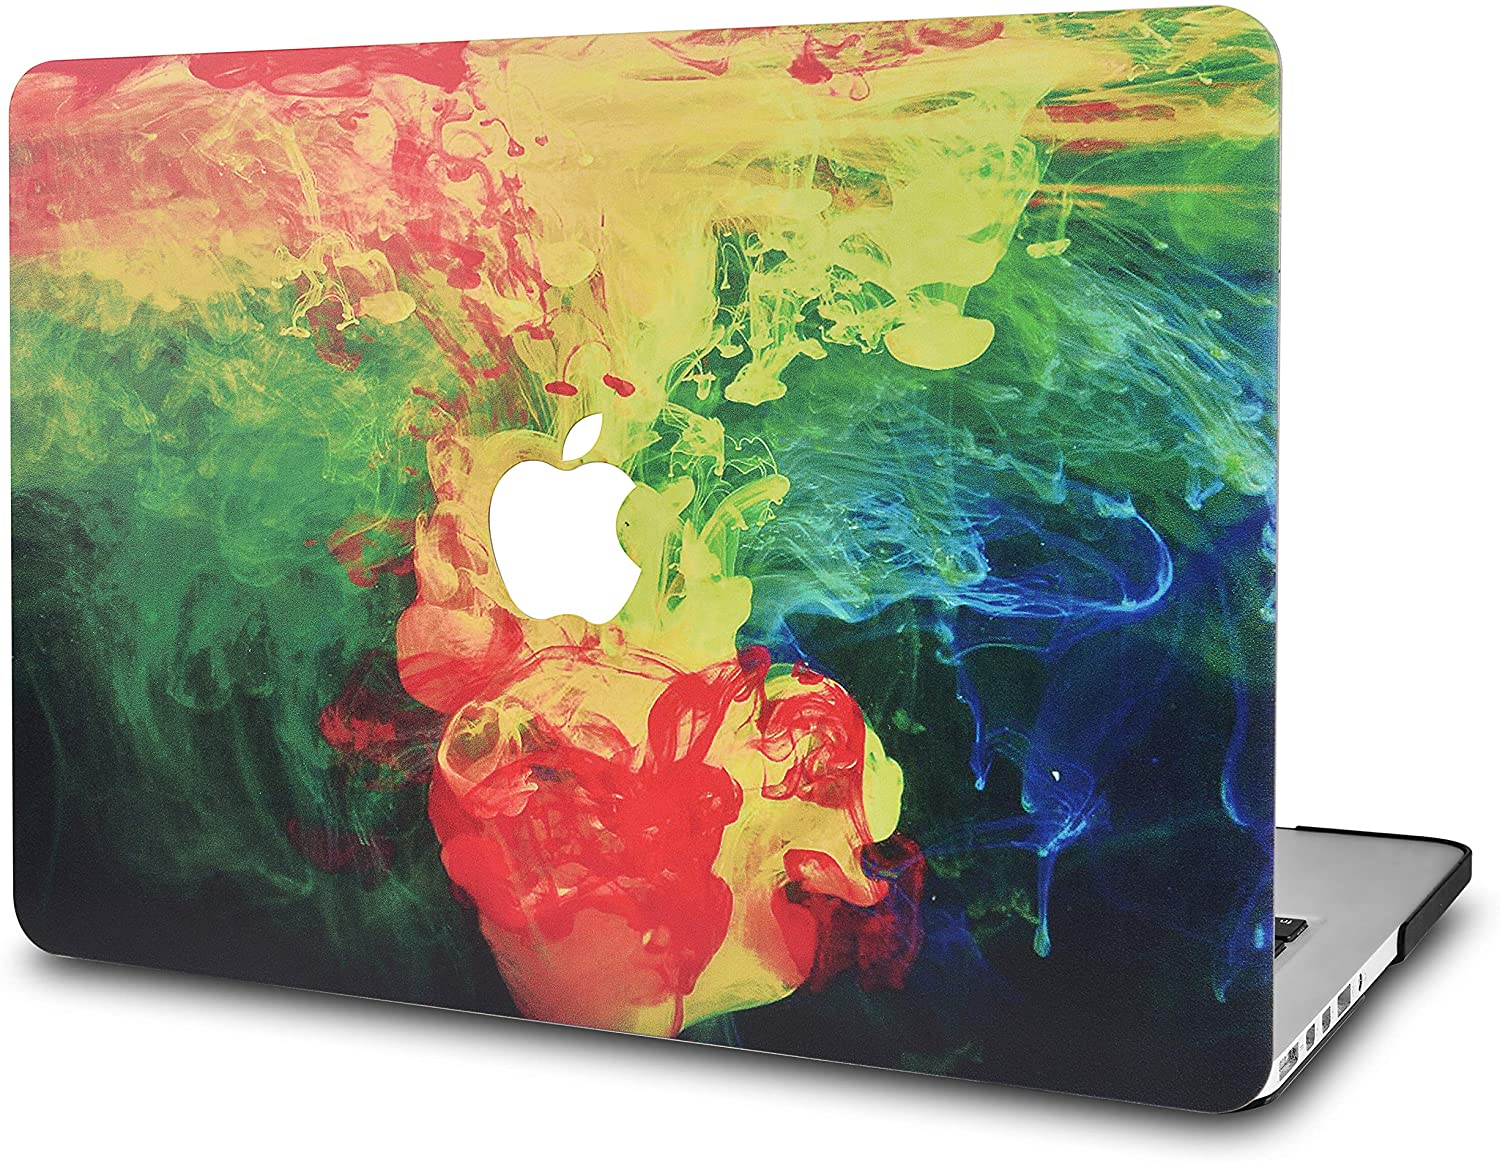 KECC Laptop Case for MacBook Air 13 Inch Plastic Case Hard Shell Cover A1466/A1369 (Ink Diffusion)